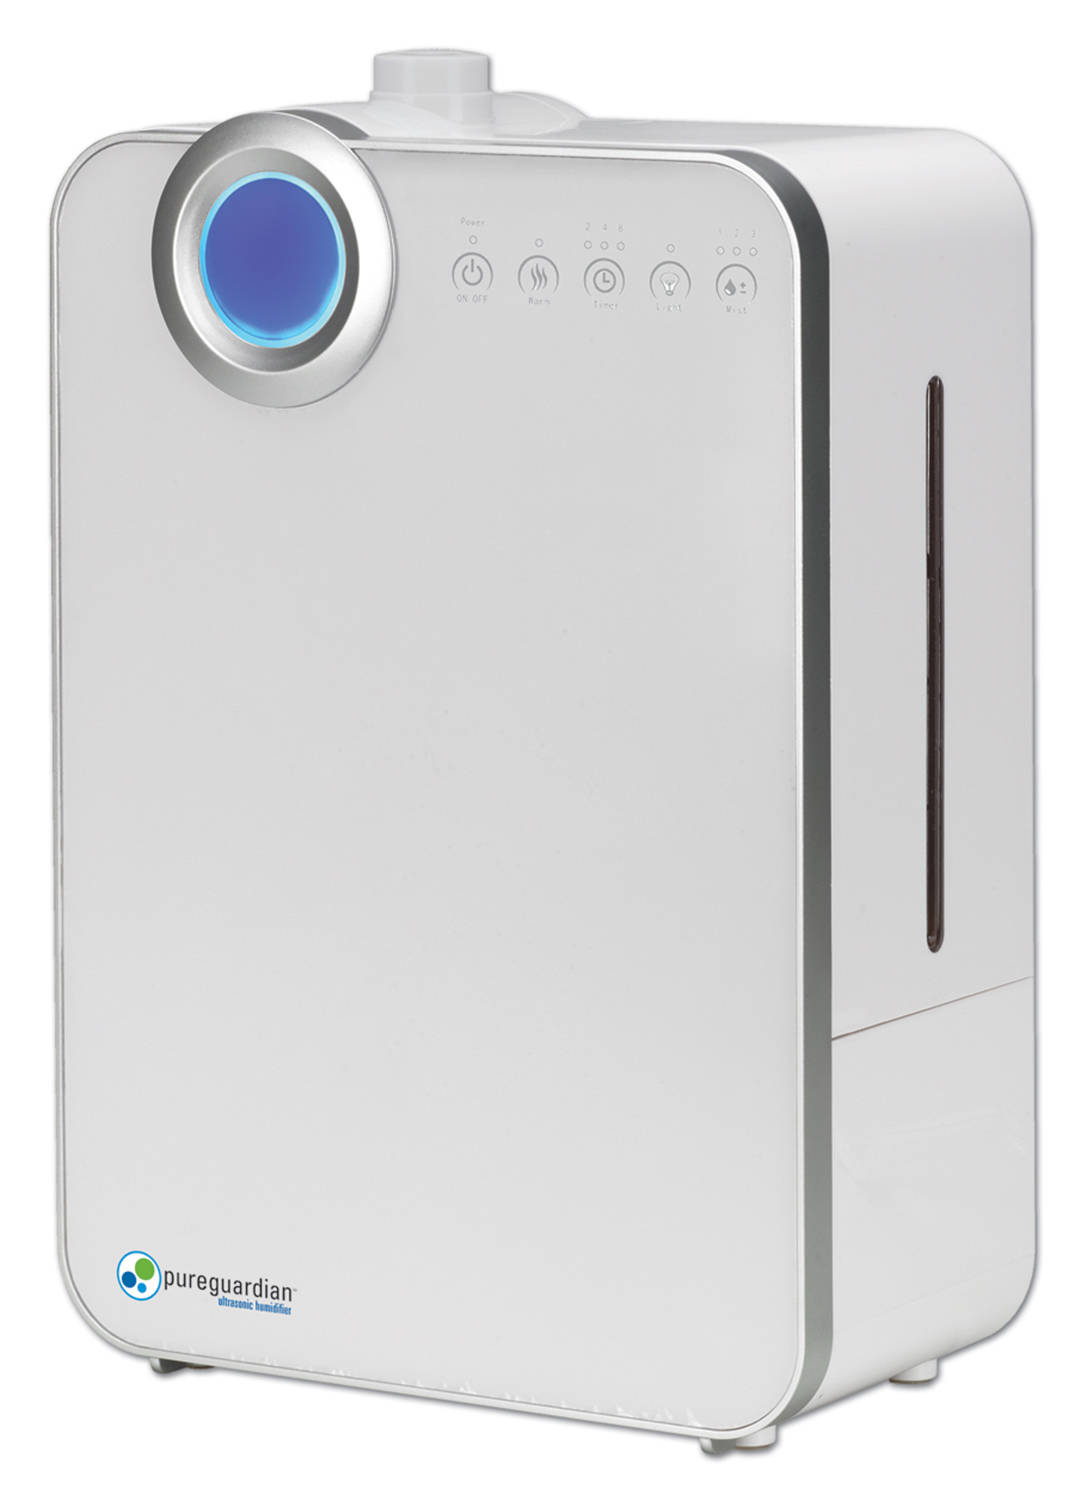 Pureguardian 90 Hour Ultrasonic Humidifier with Humidistat White  #2C7E9F